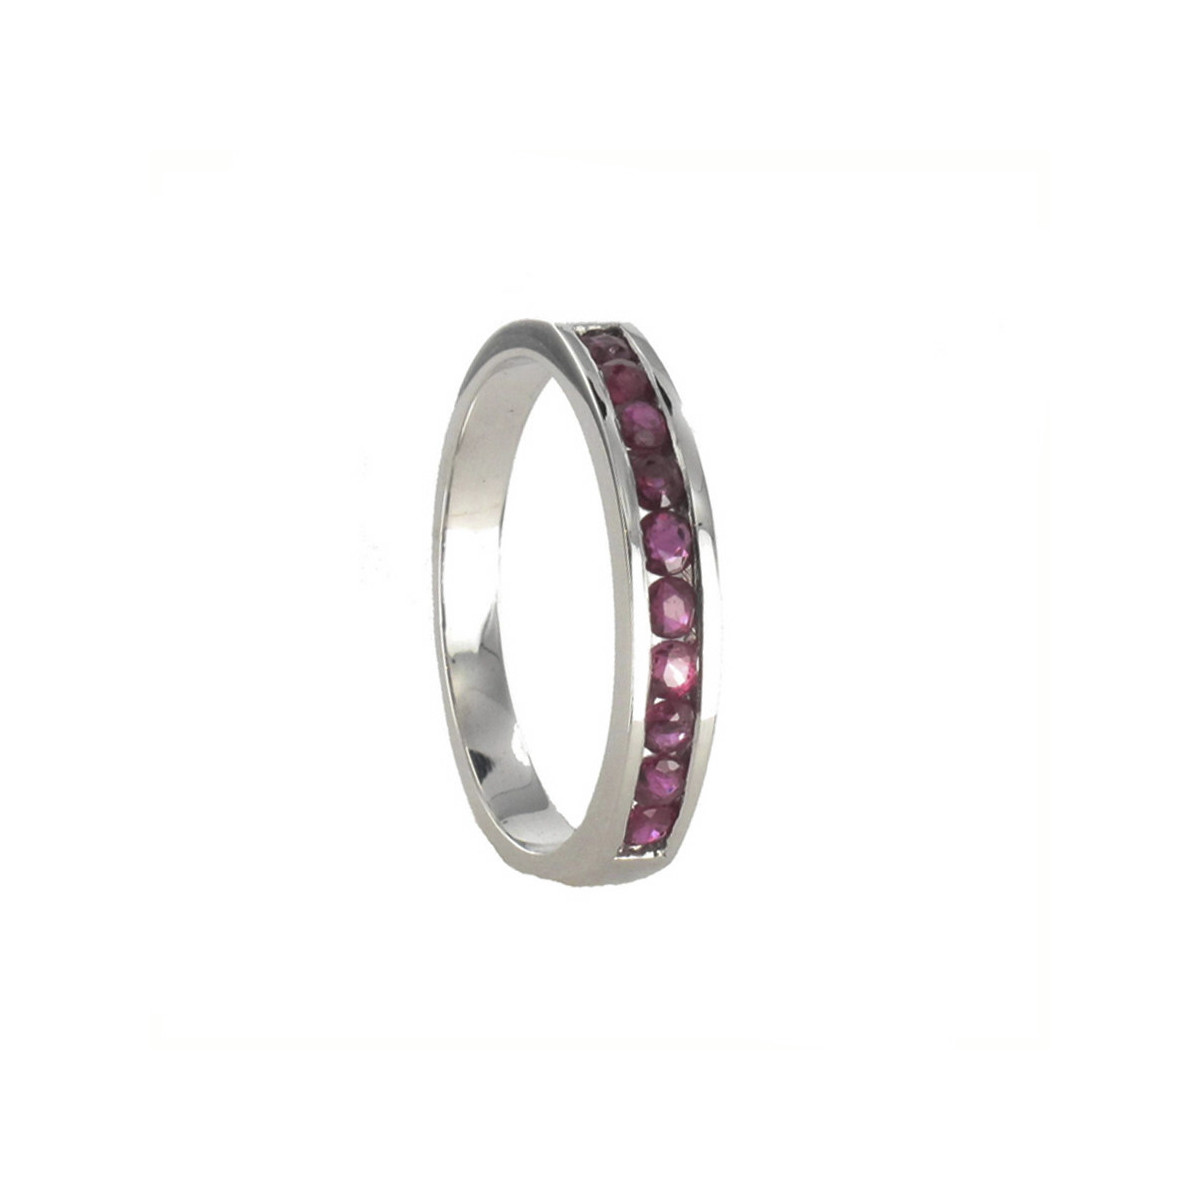 HALF RING 18K GOLD WITH RUBIES